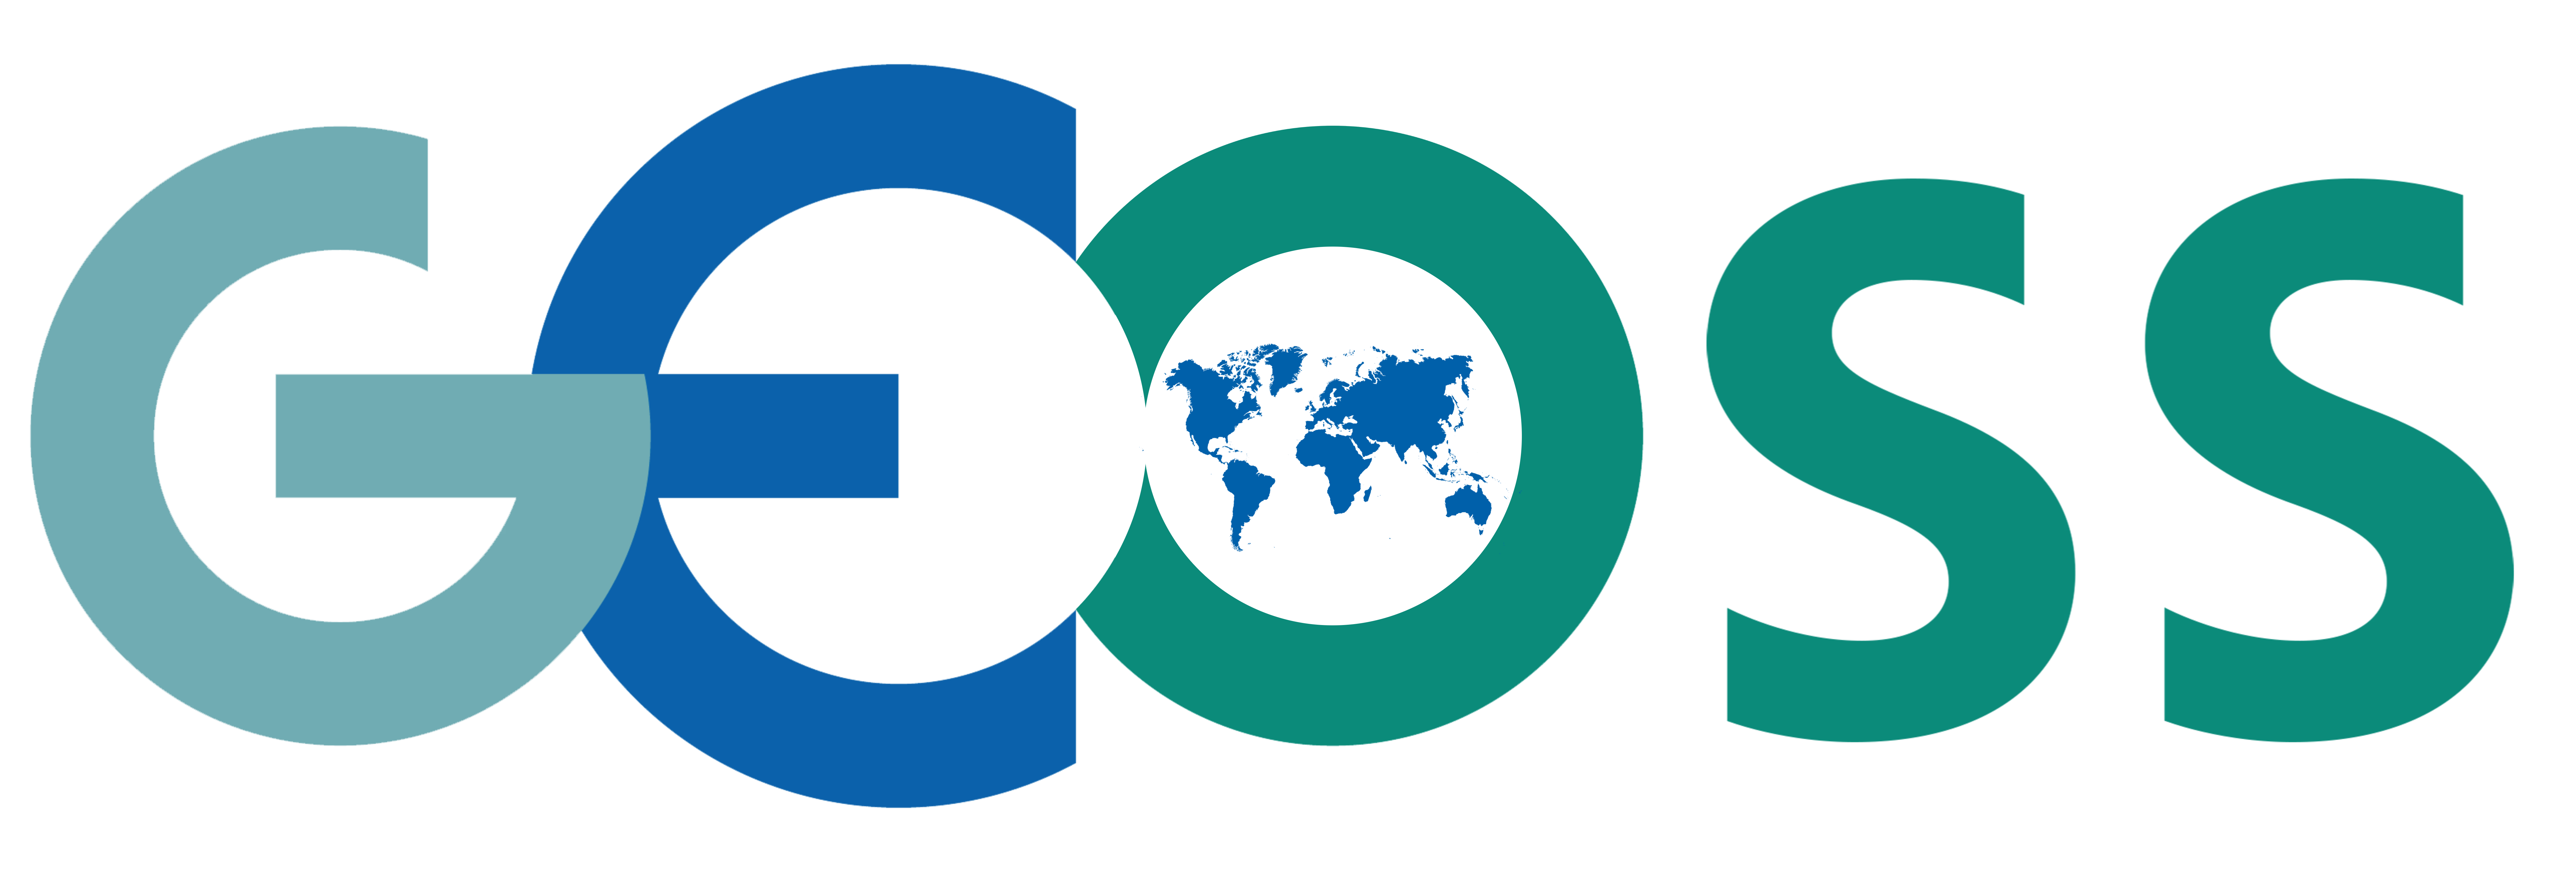 Geo Group On Earth Observations